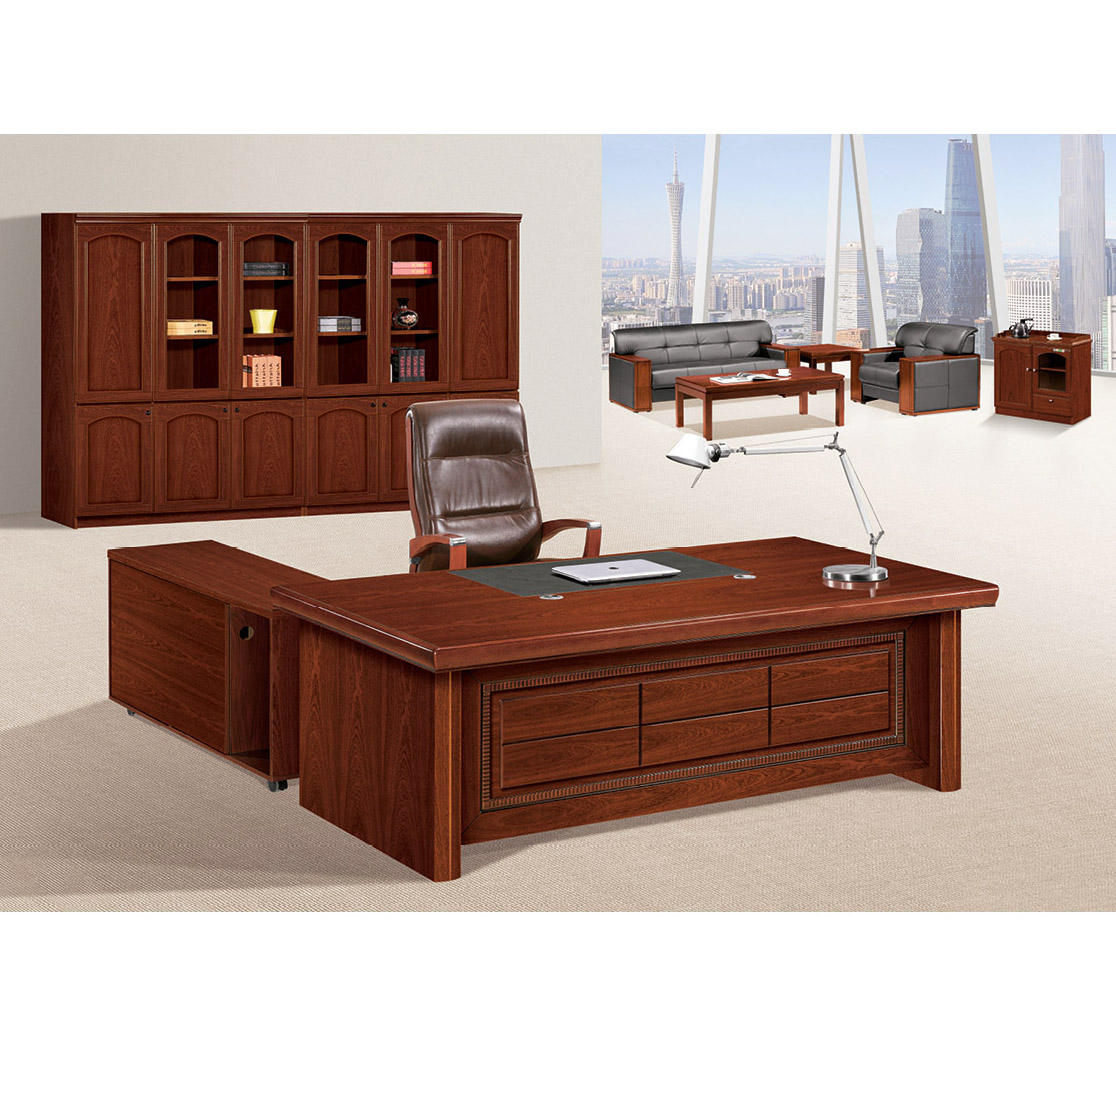 Luxury wooden presidential bureau desk antique furniture sets